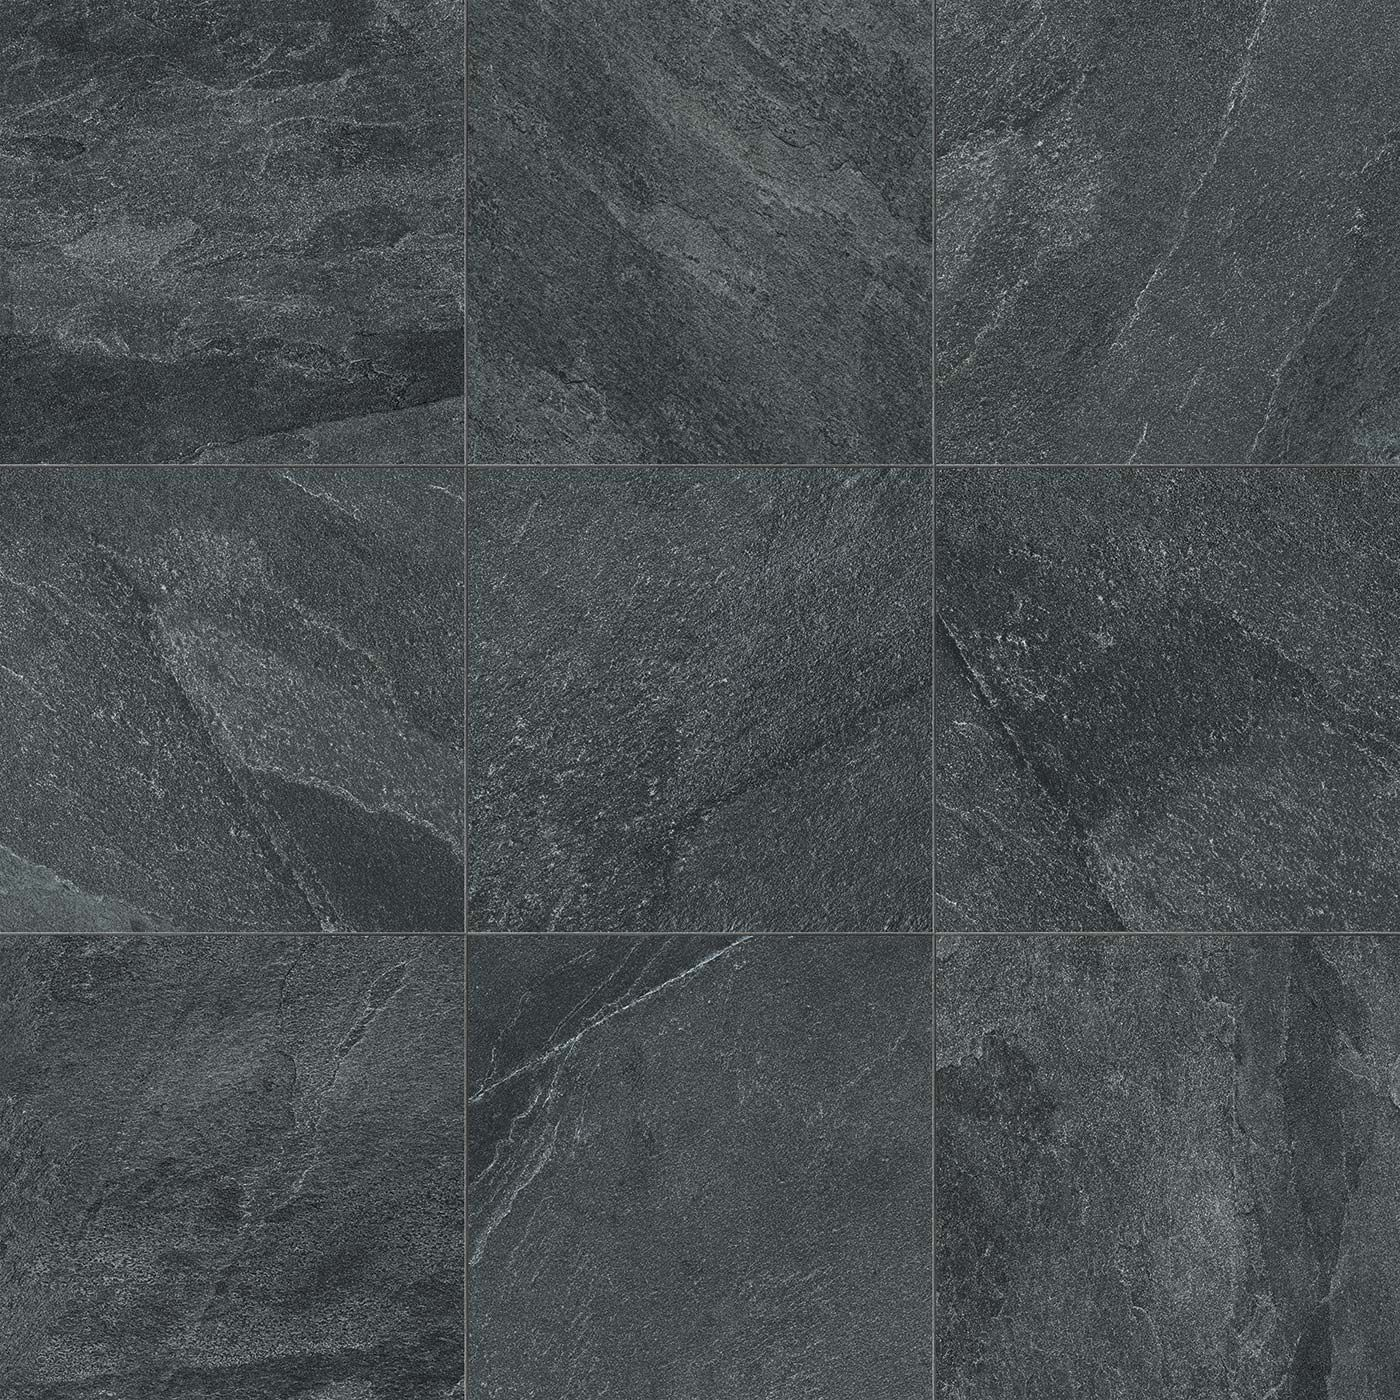 Natural Stone Collection By Cerim